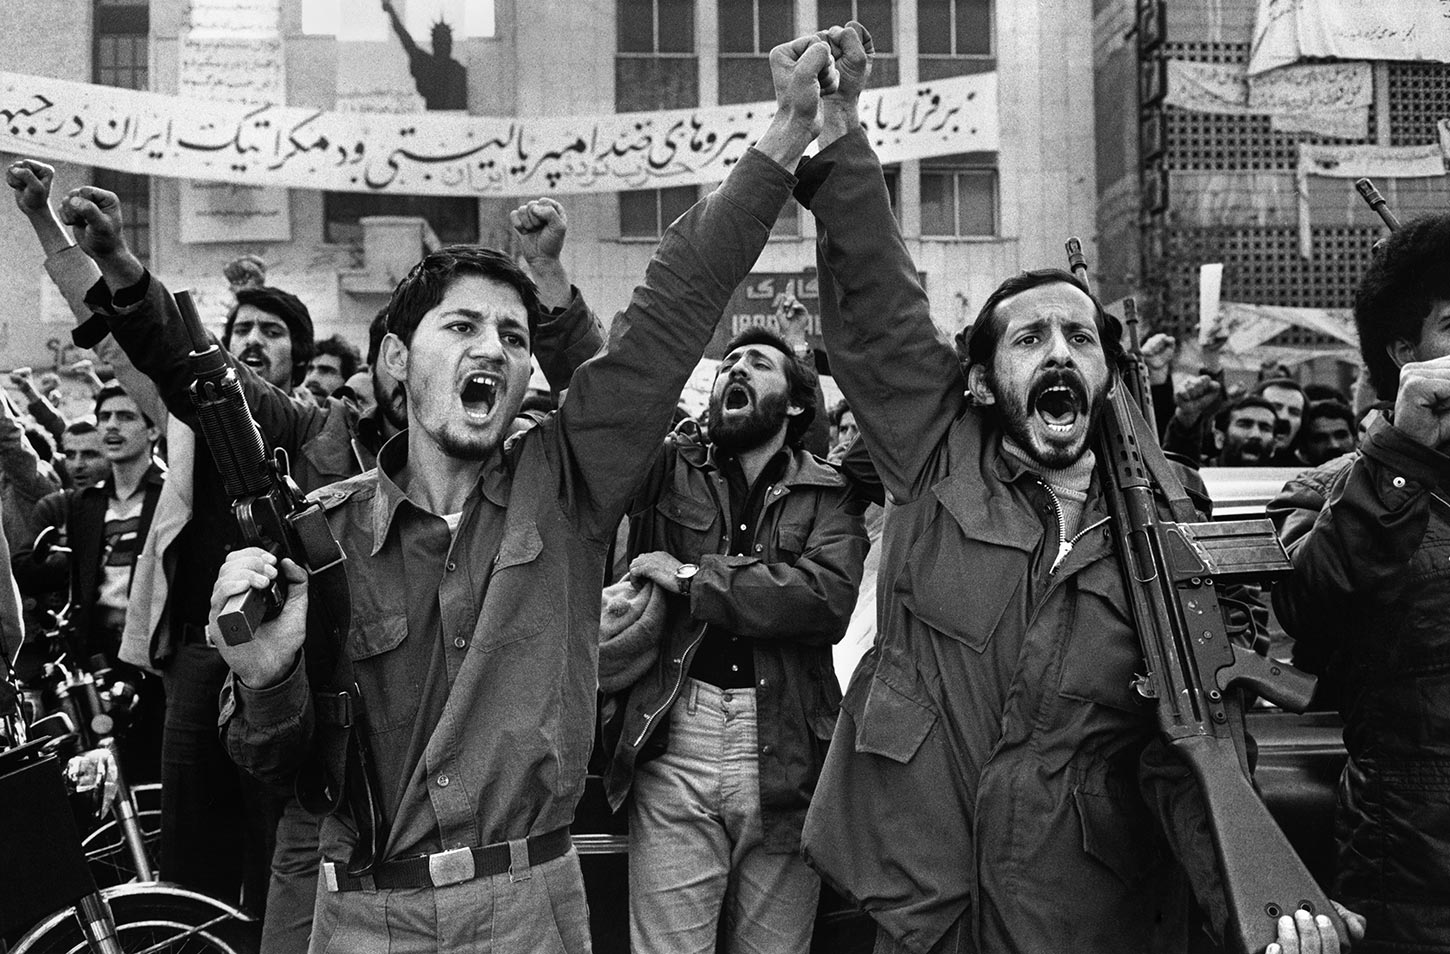 Armed militants outside the United States Embassy. Tehran, Iran. 1979.